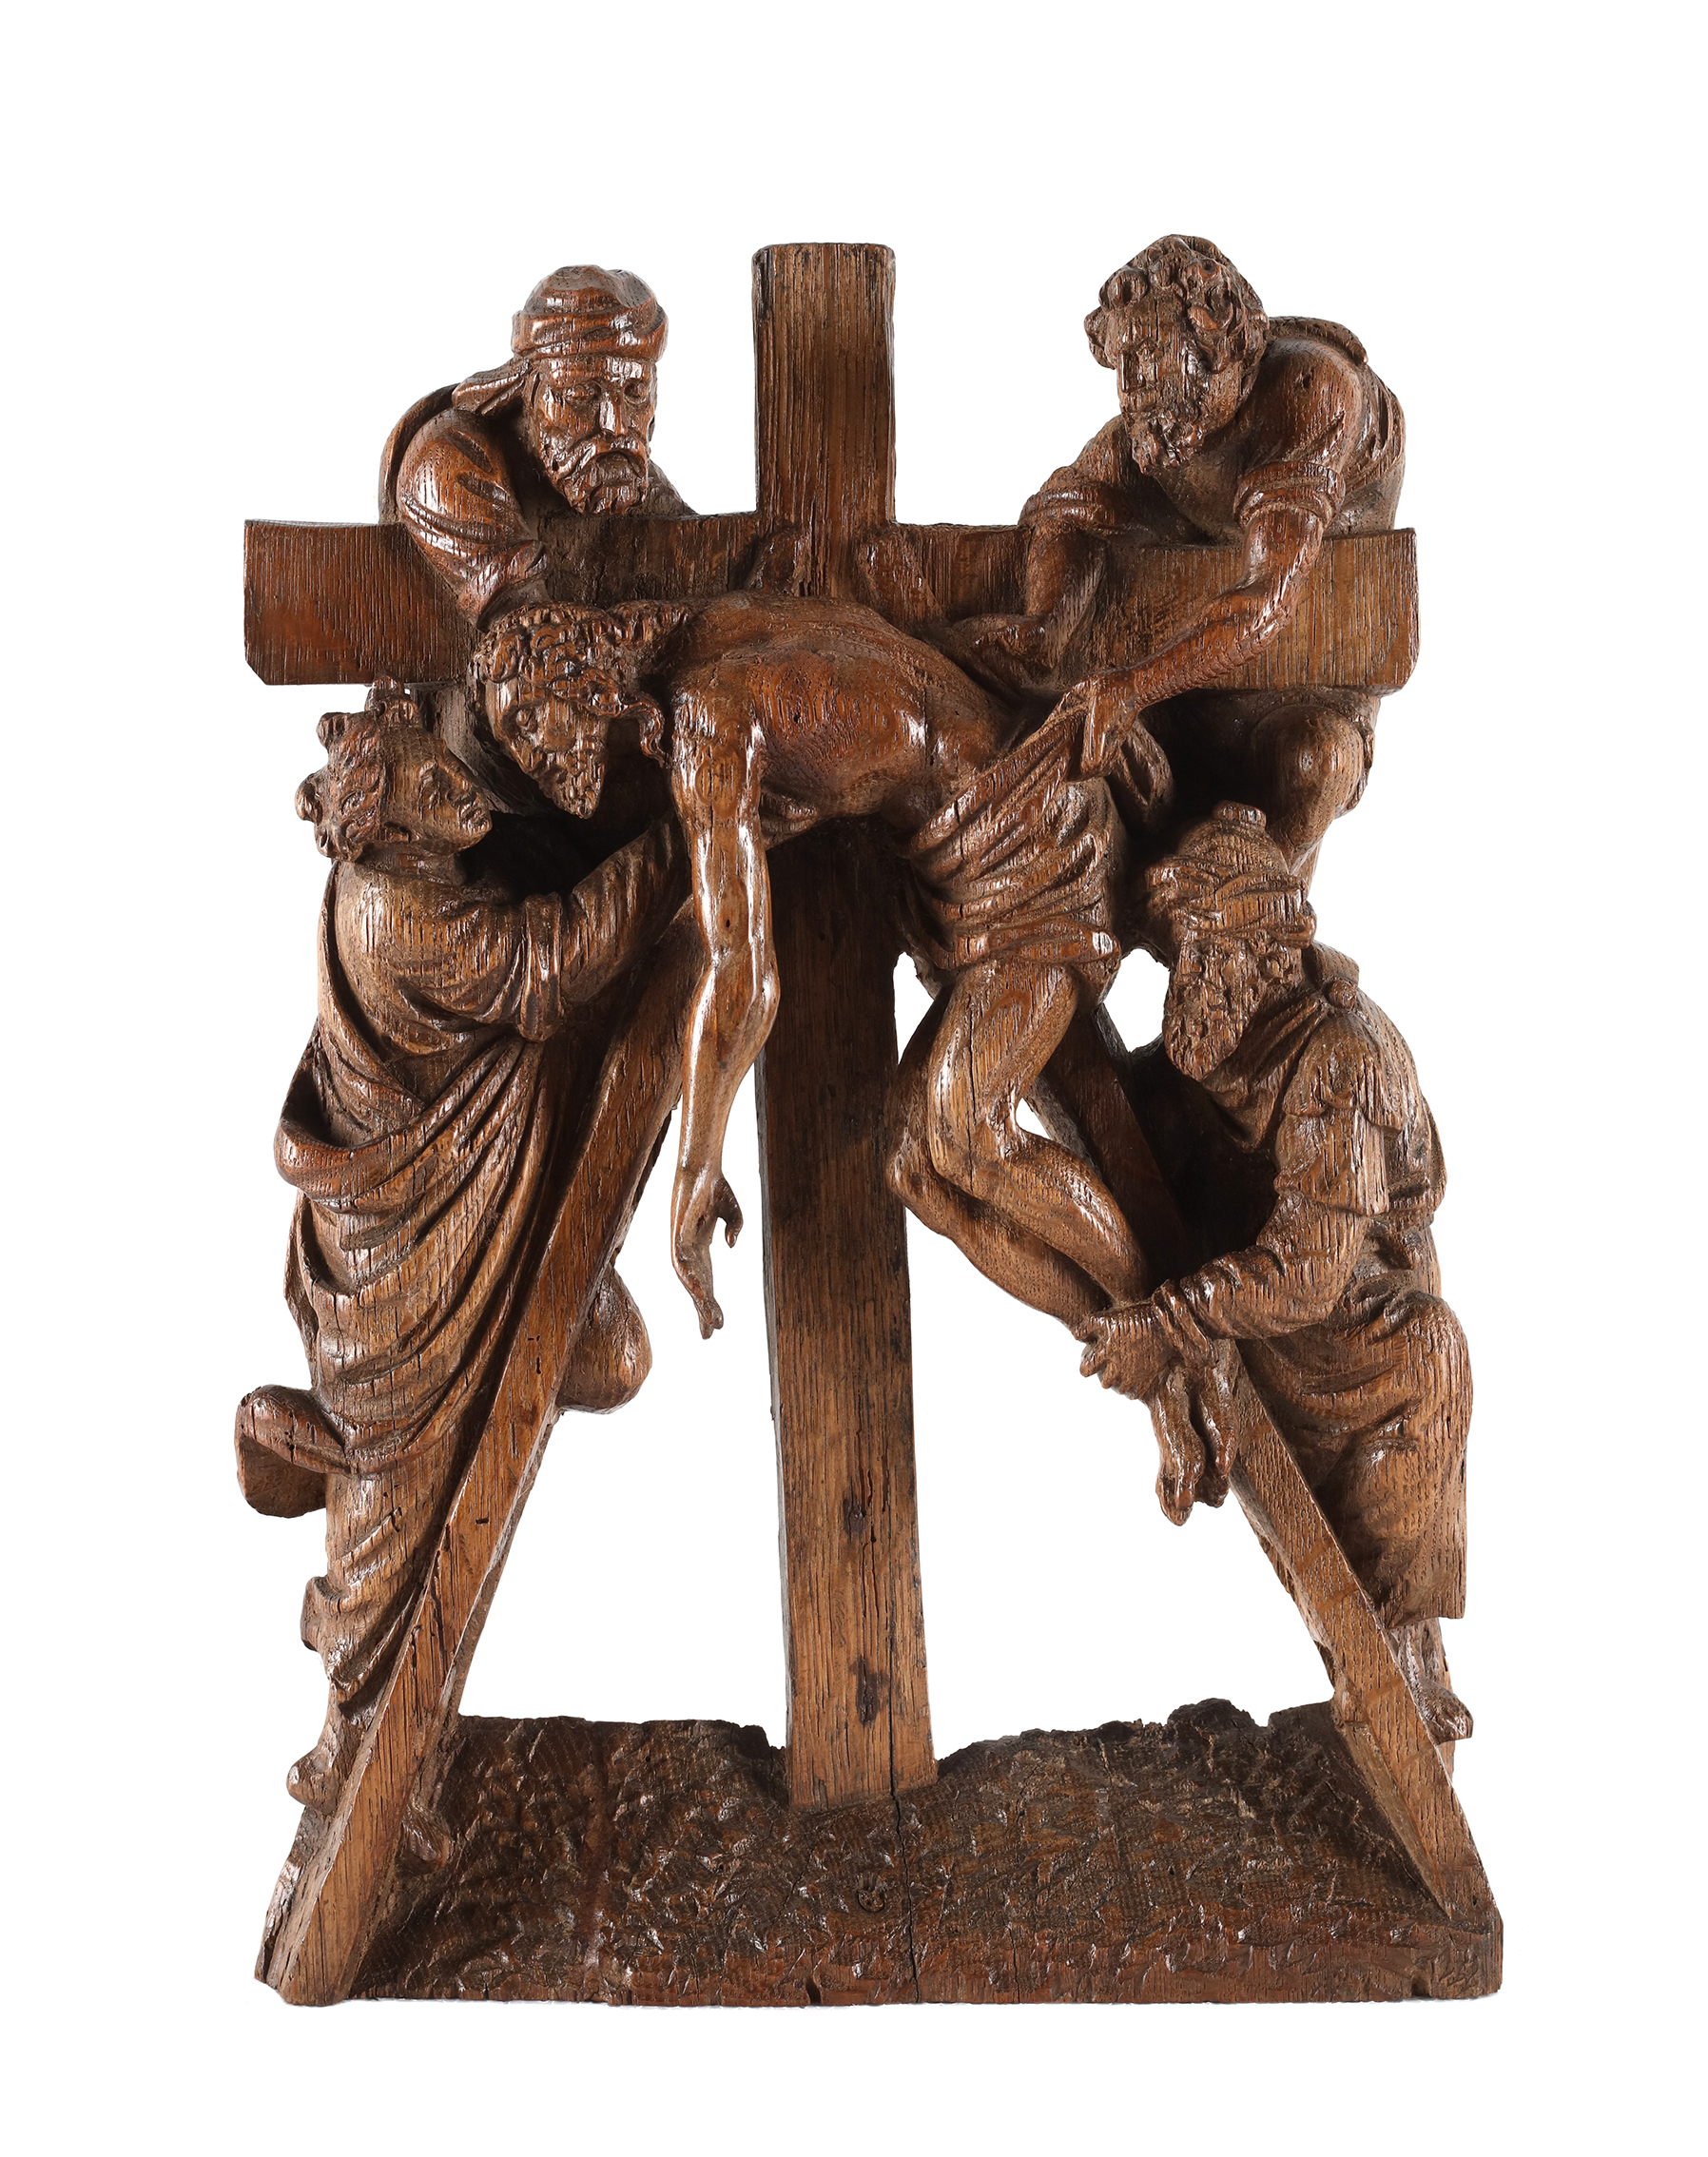 A group representing the Descent from the Cross